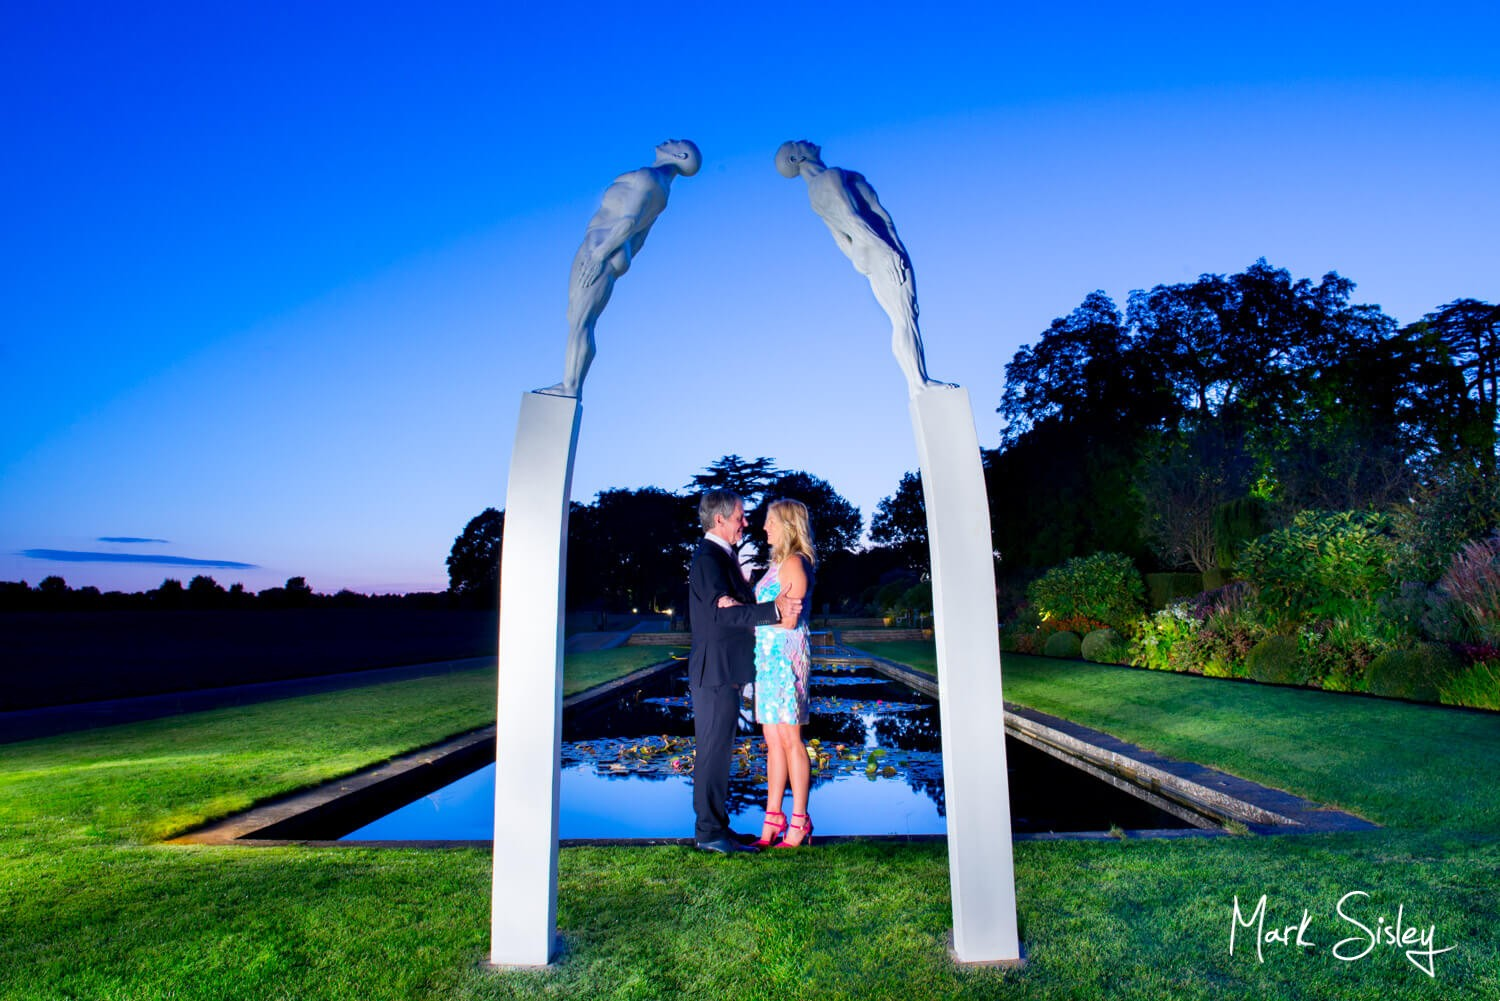 Grove Hotel wedding photography at dusk by the stunning water feature